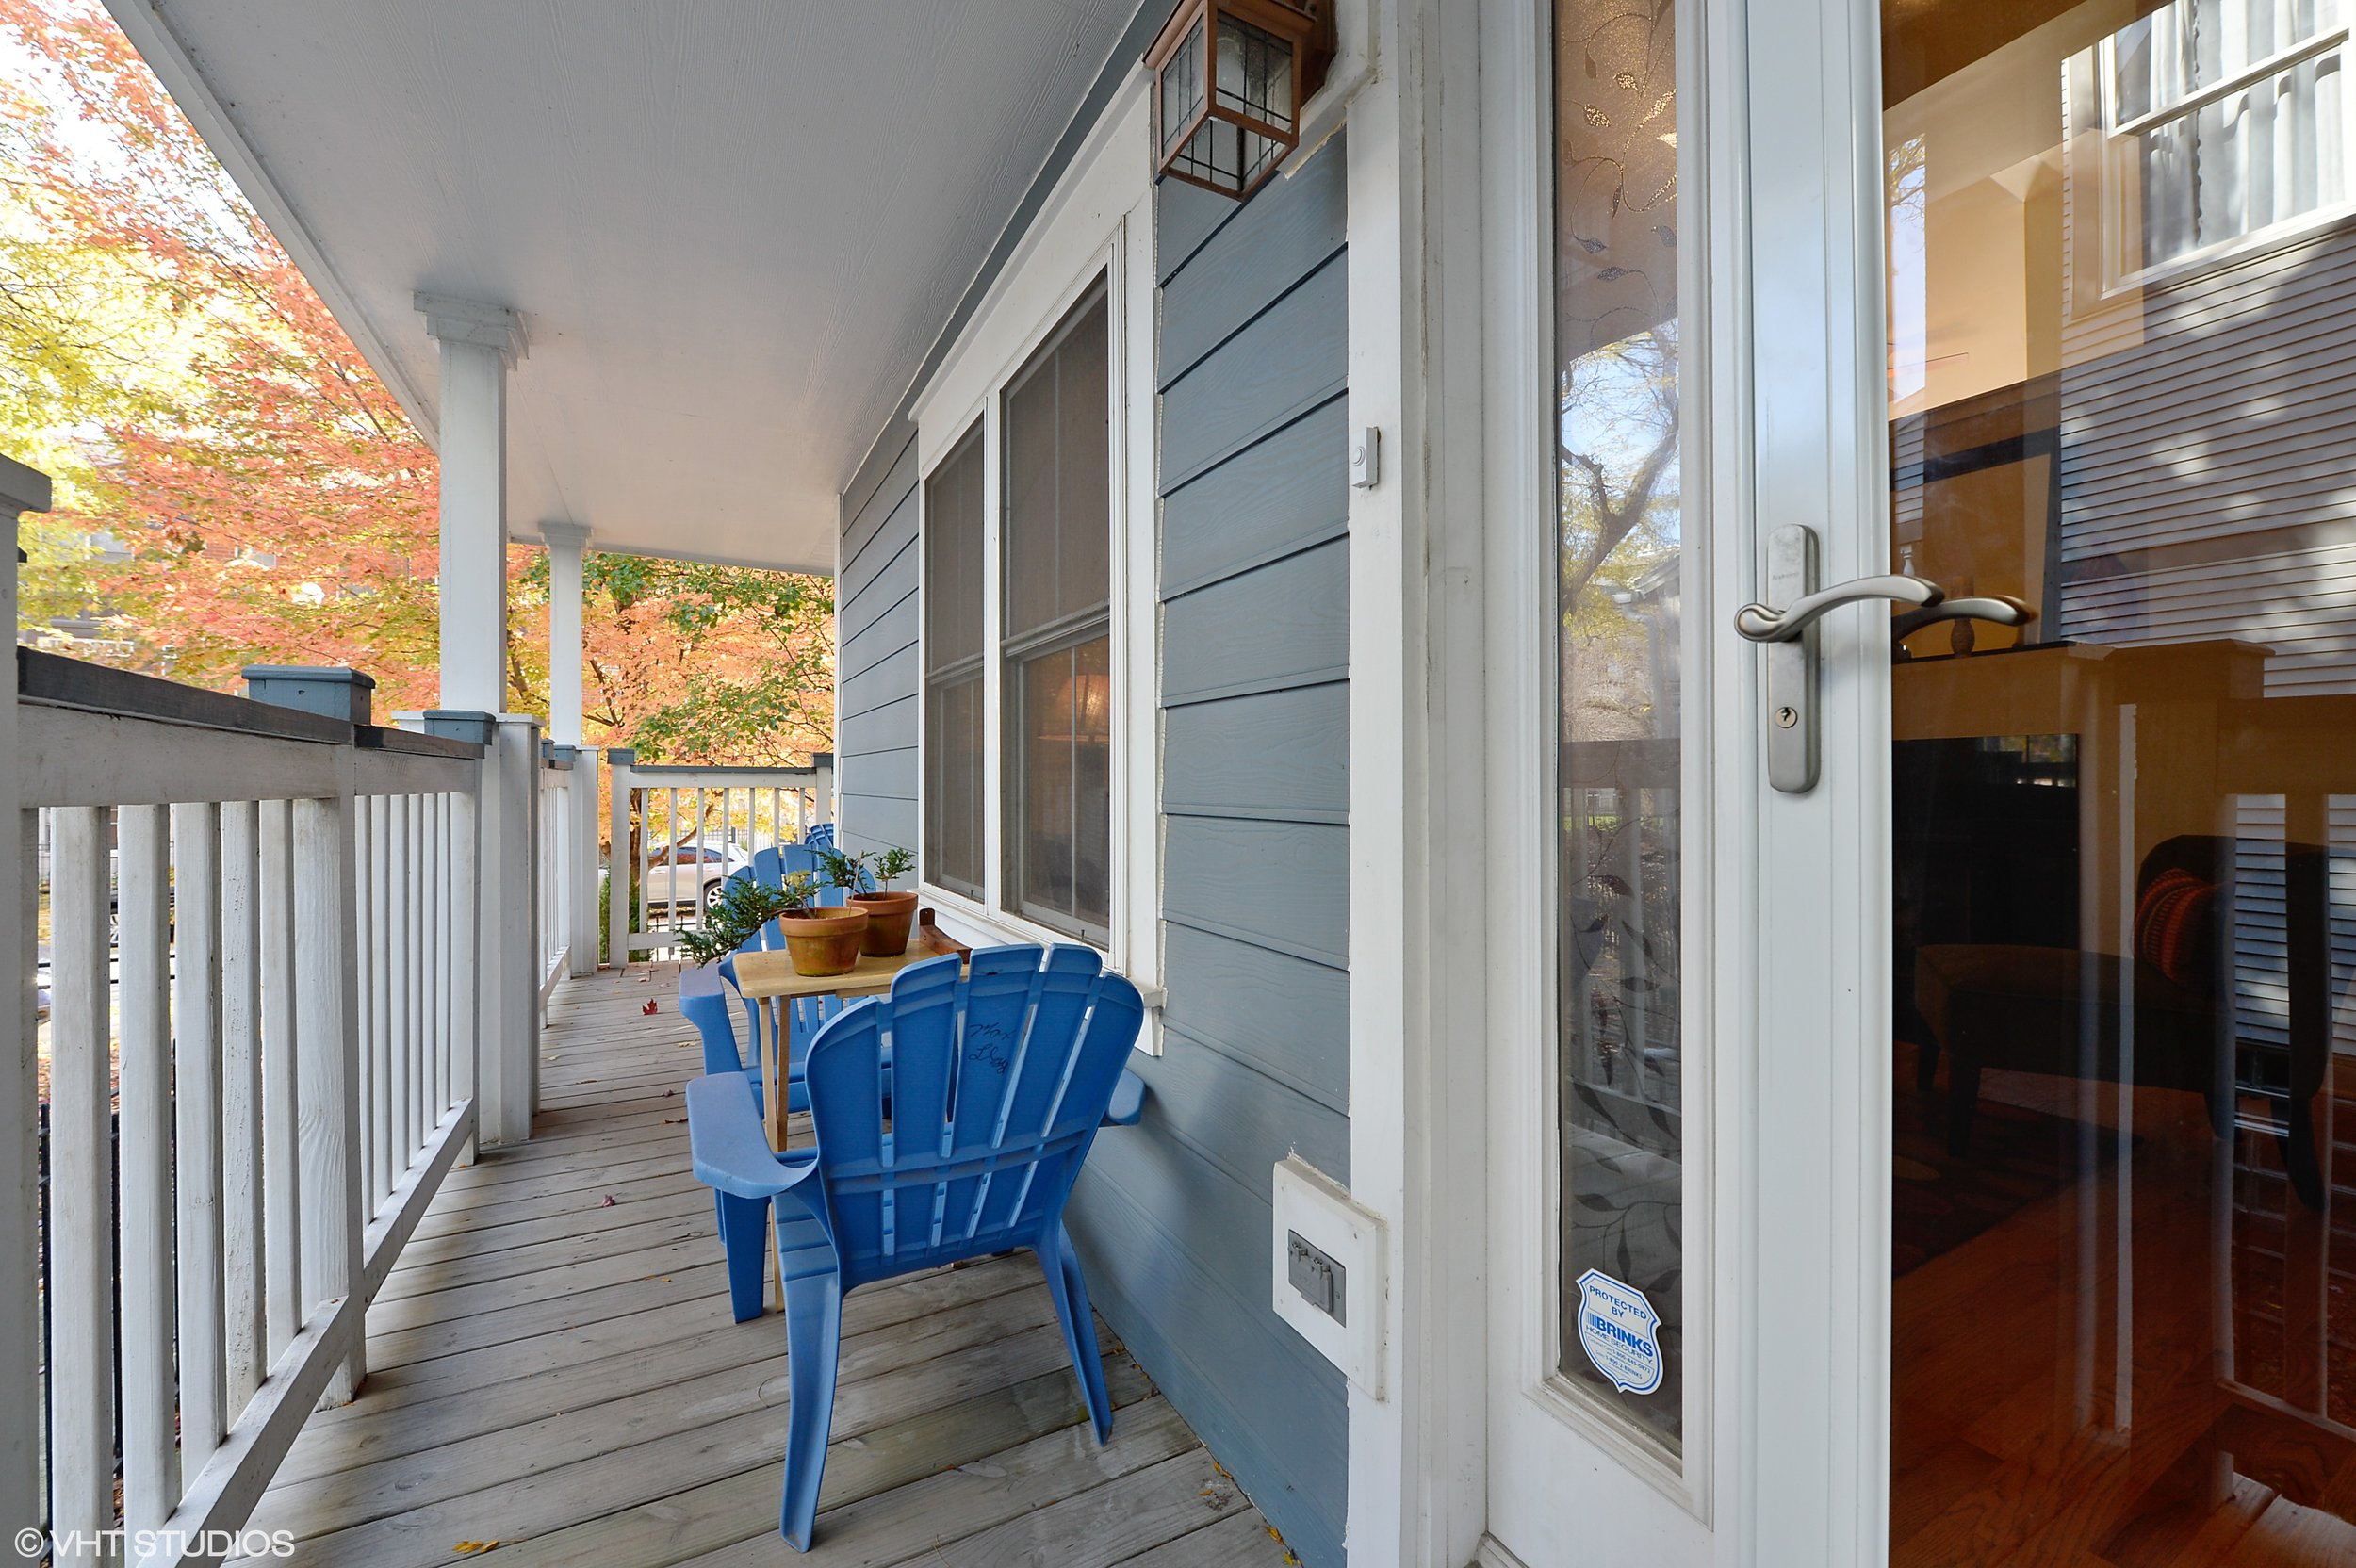 13_4634SouthGreenwoodAve_1_65_Porch_HiRes.jpg